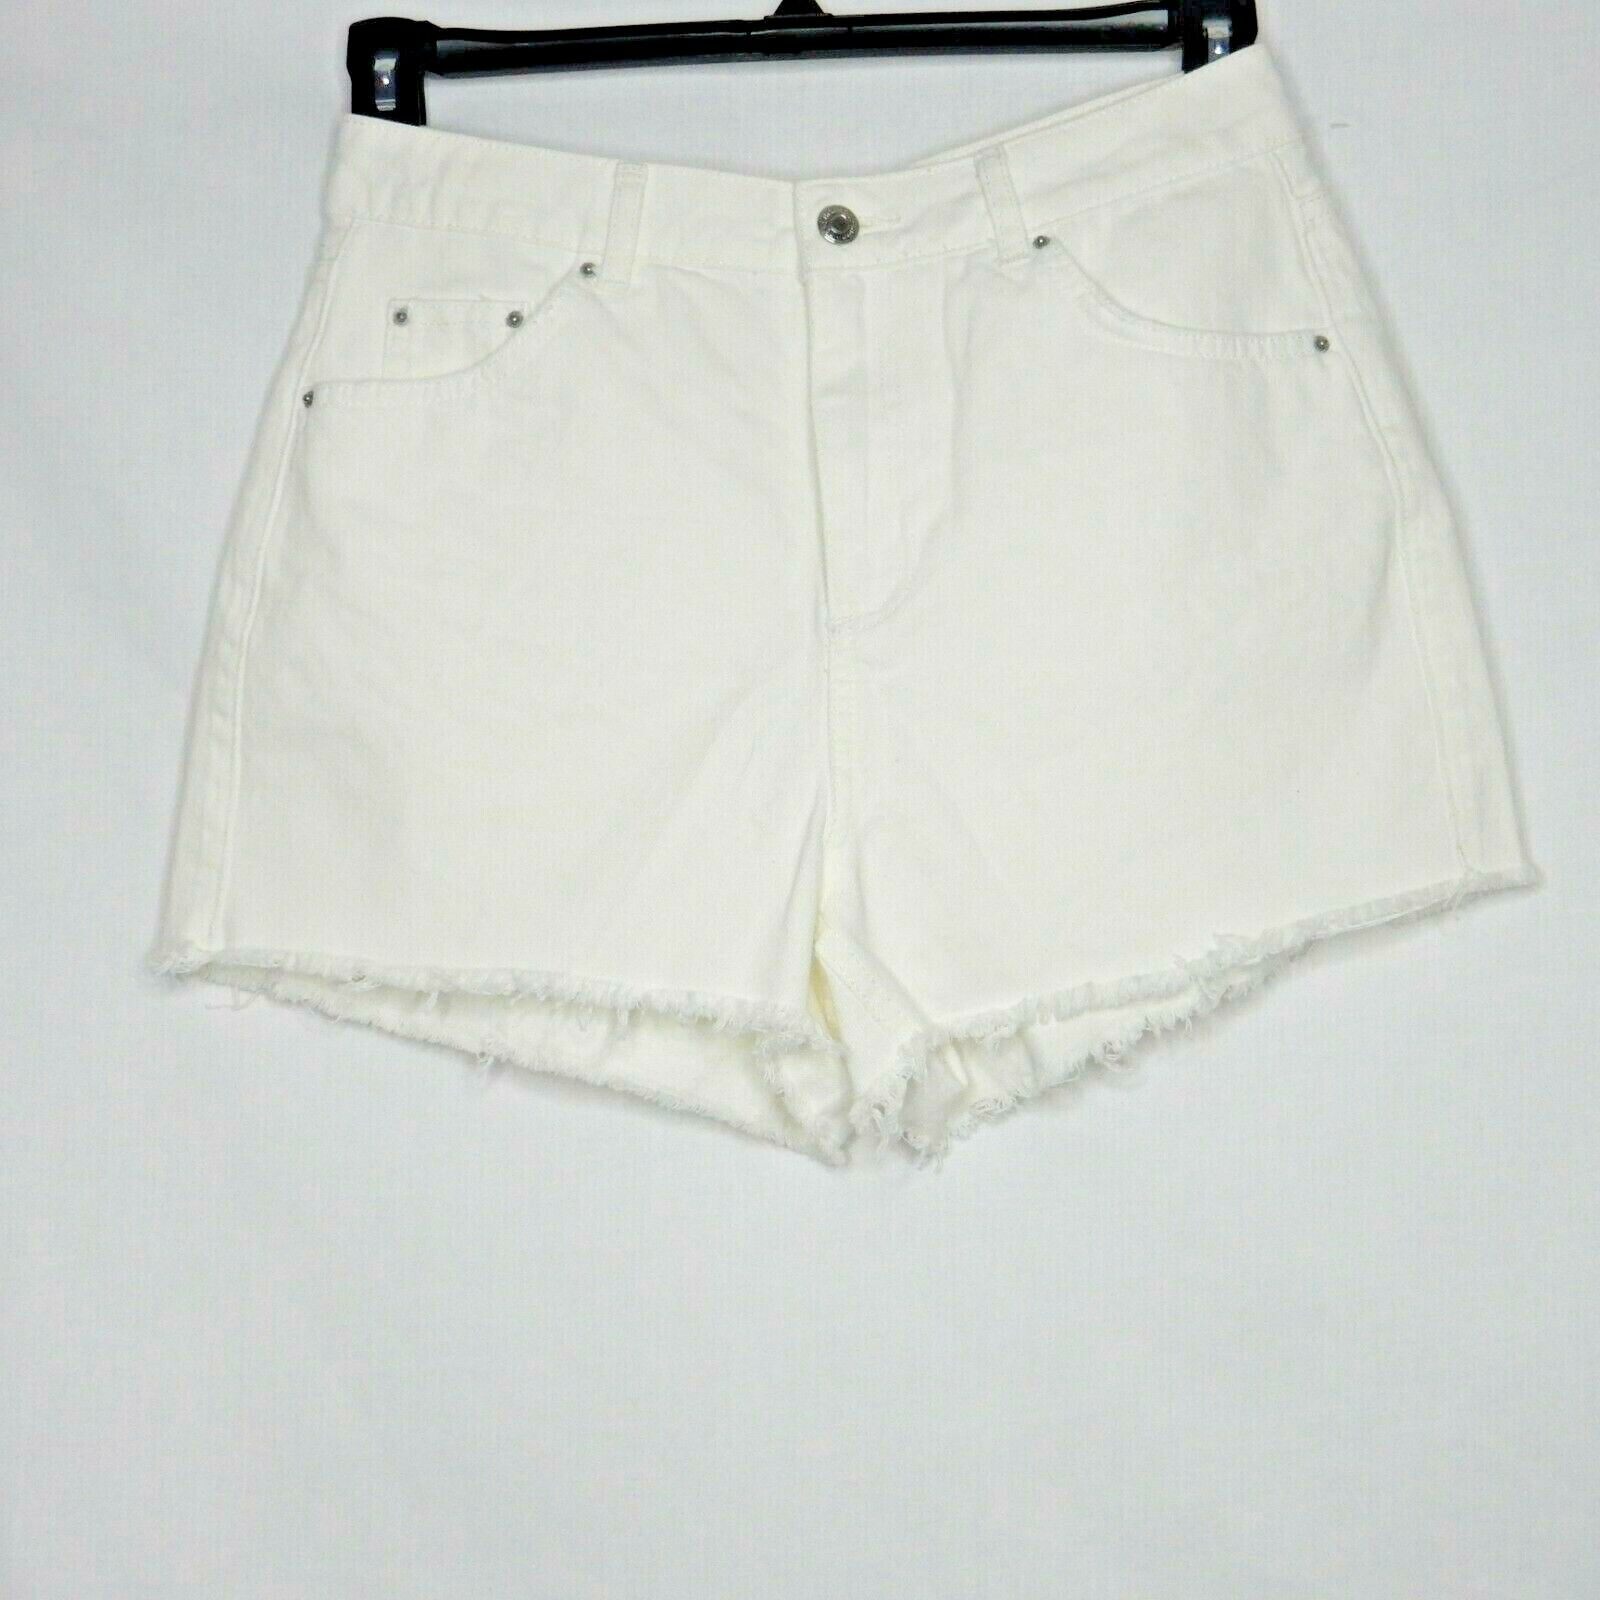 TopShop MOTO MOM Denim Cut-off Shorts White Size 14 USA 10 NEW